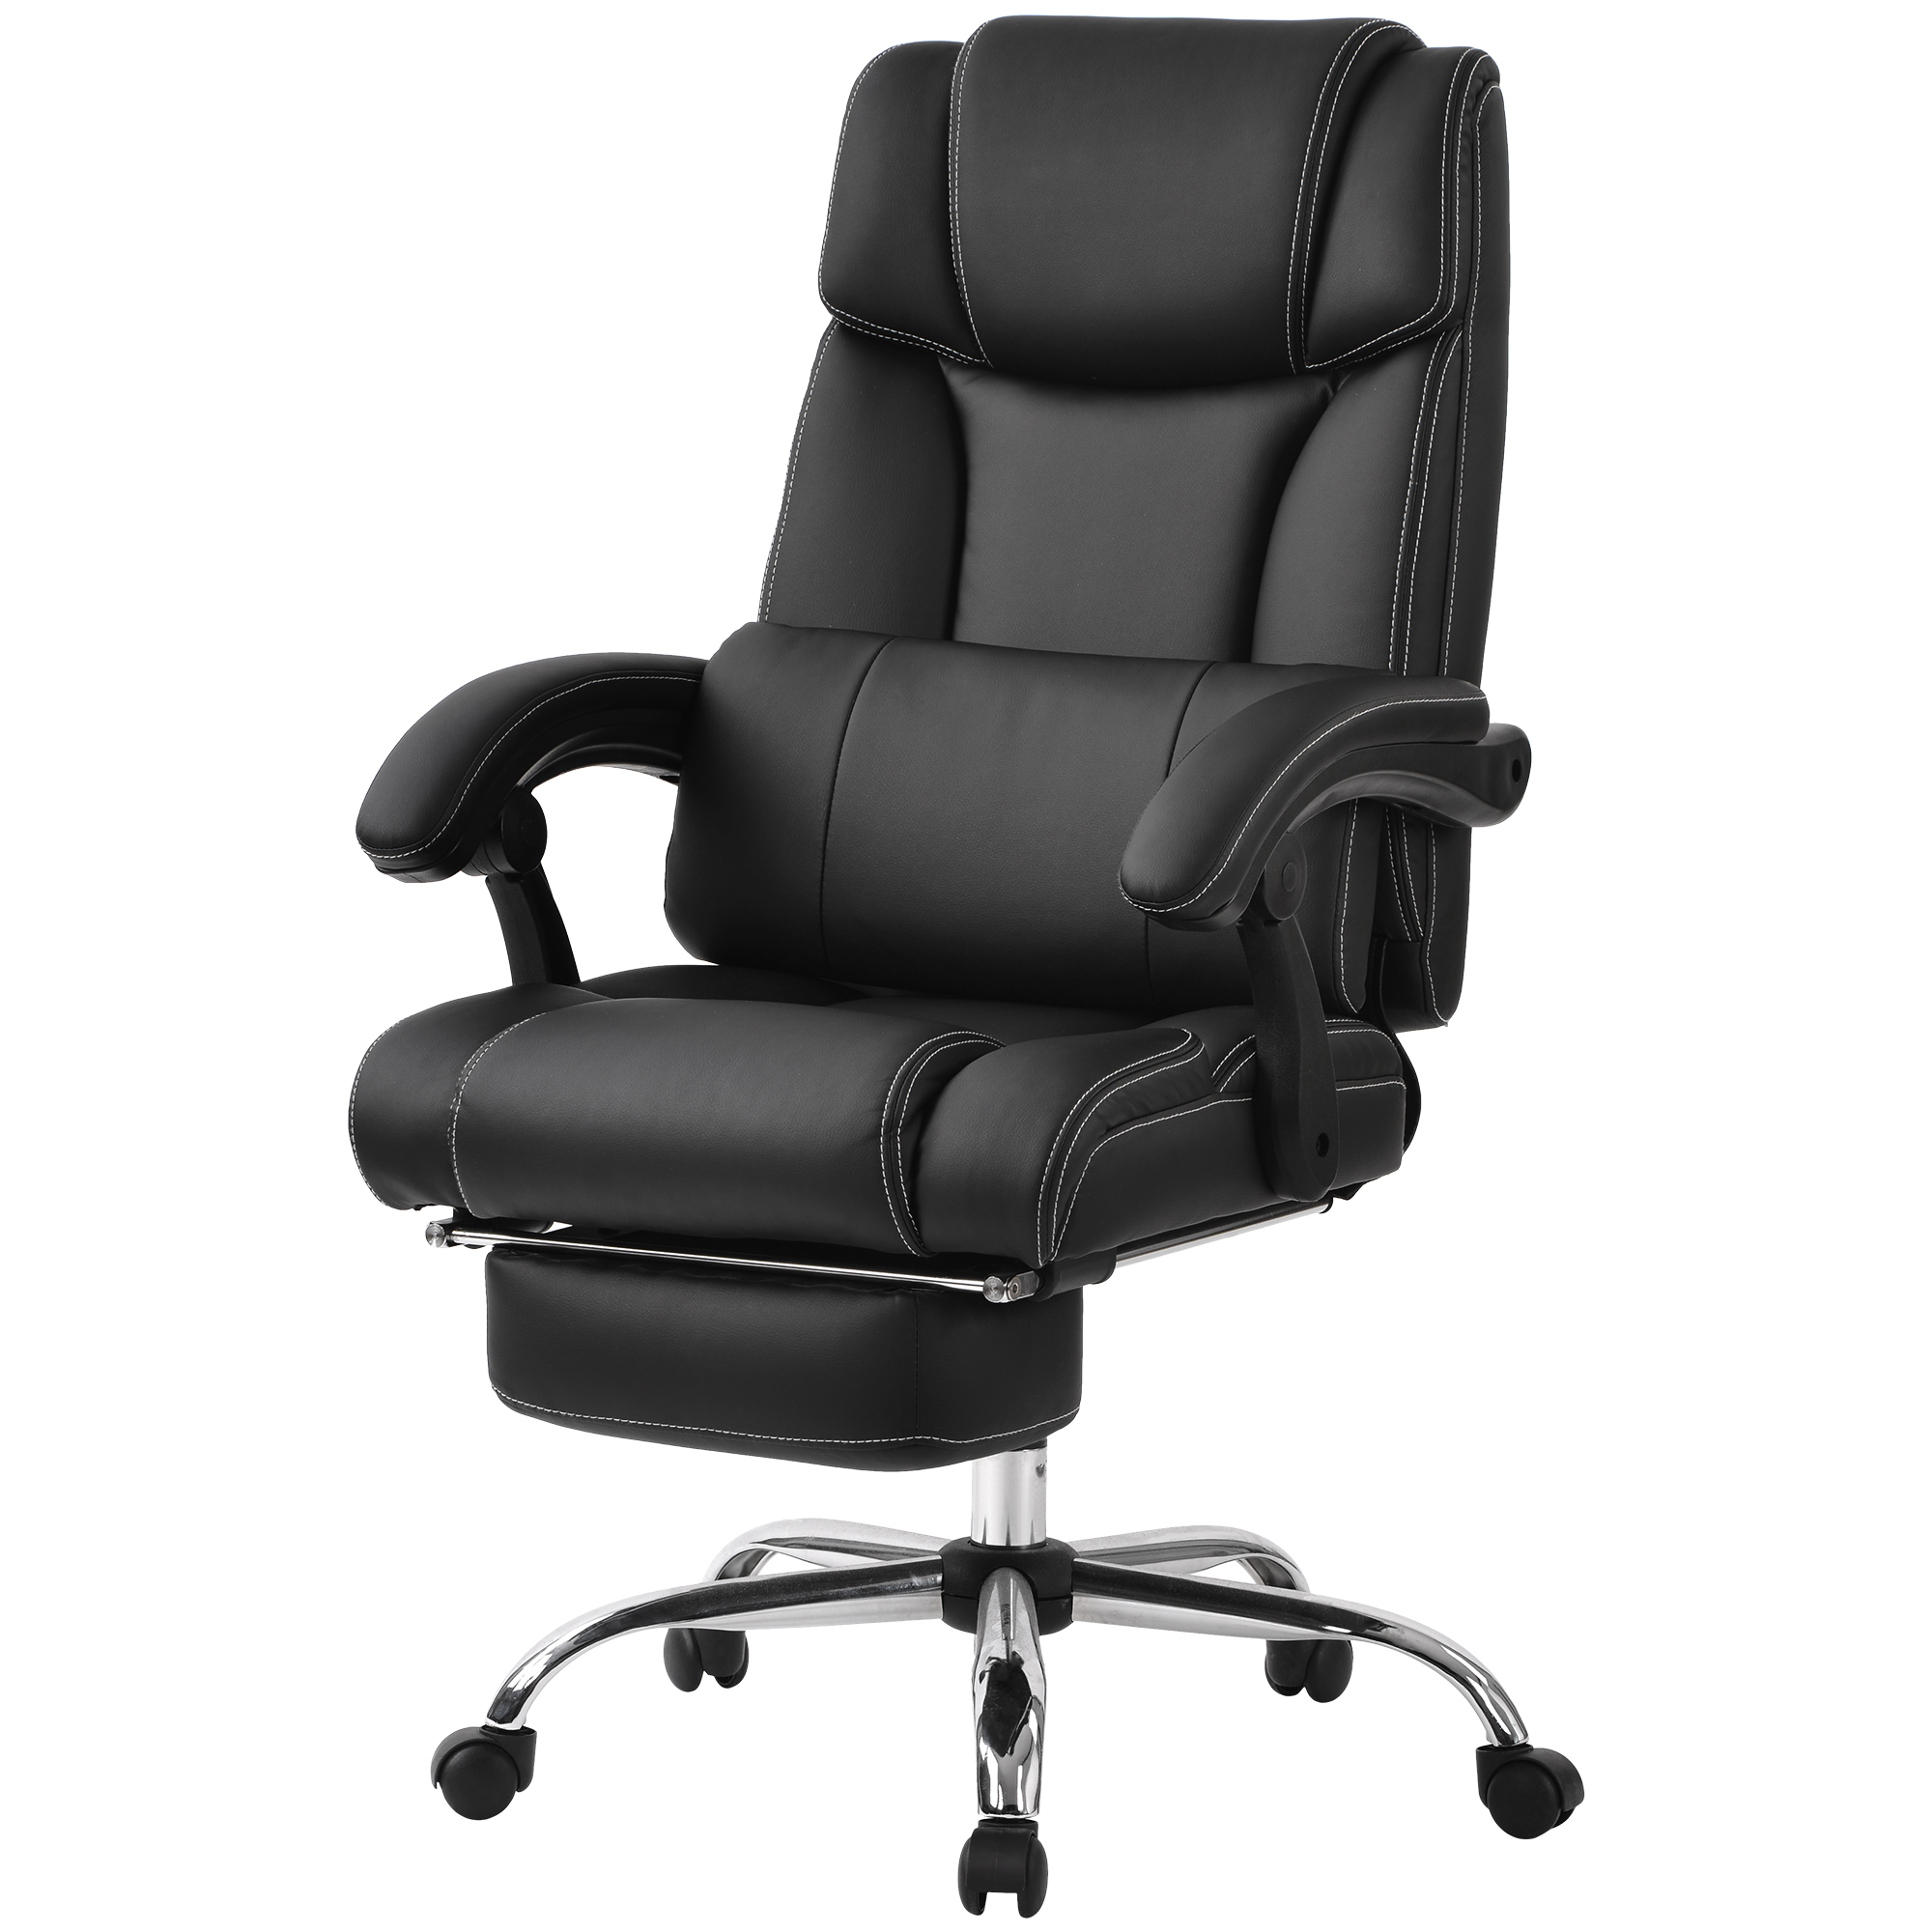 High Quality PU Leather Office Chair